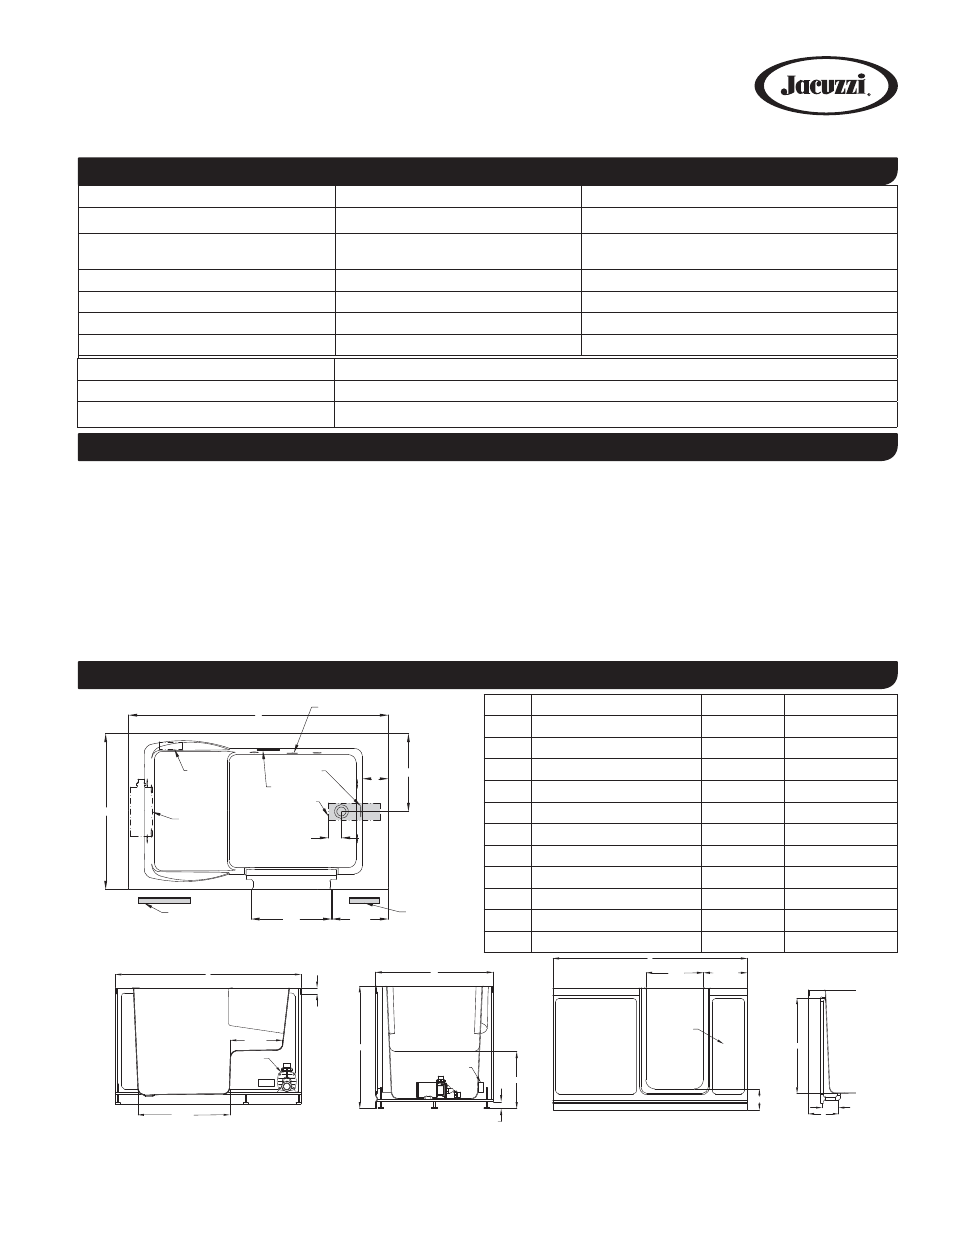 Jacuzzi FINESTRA F4N6036WRL User Manual | 1 page